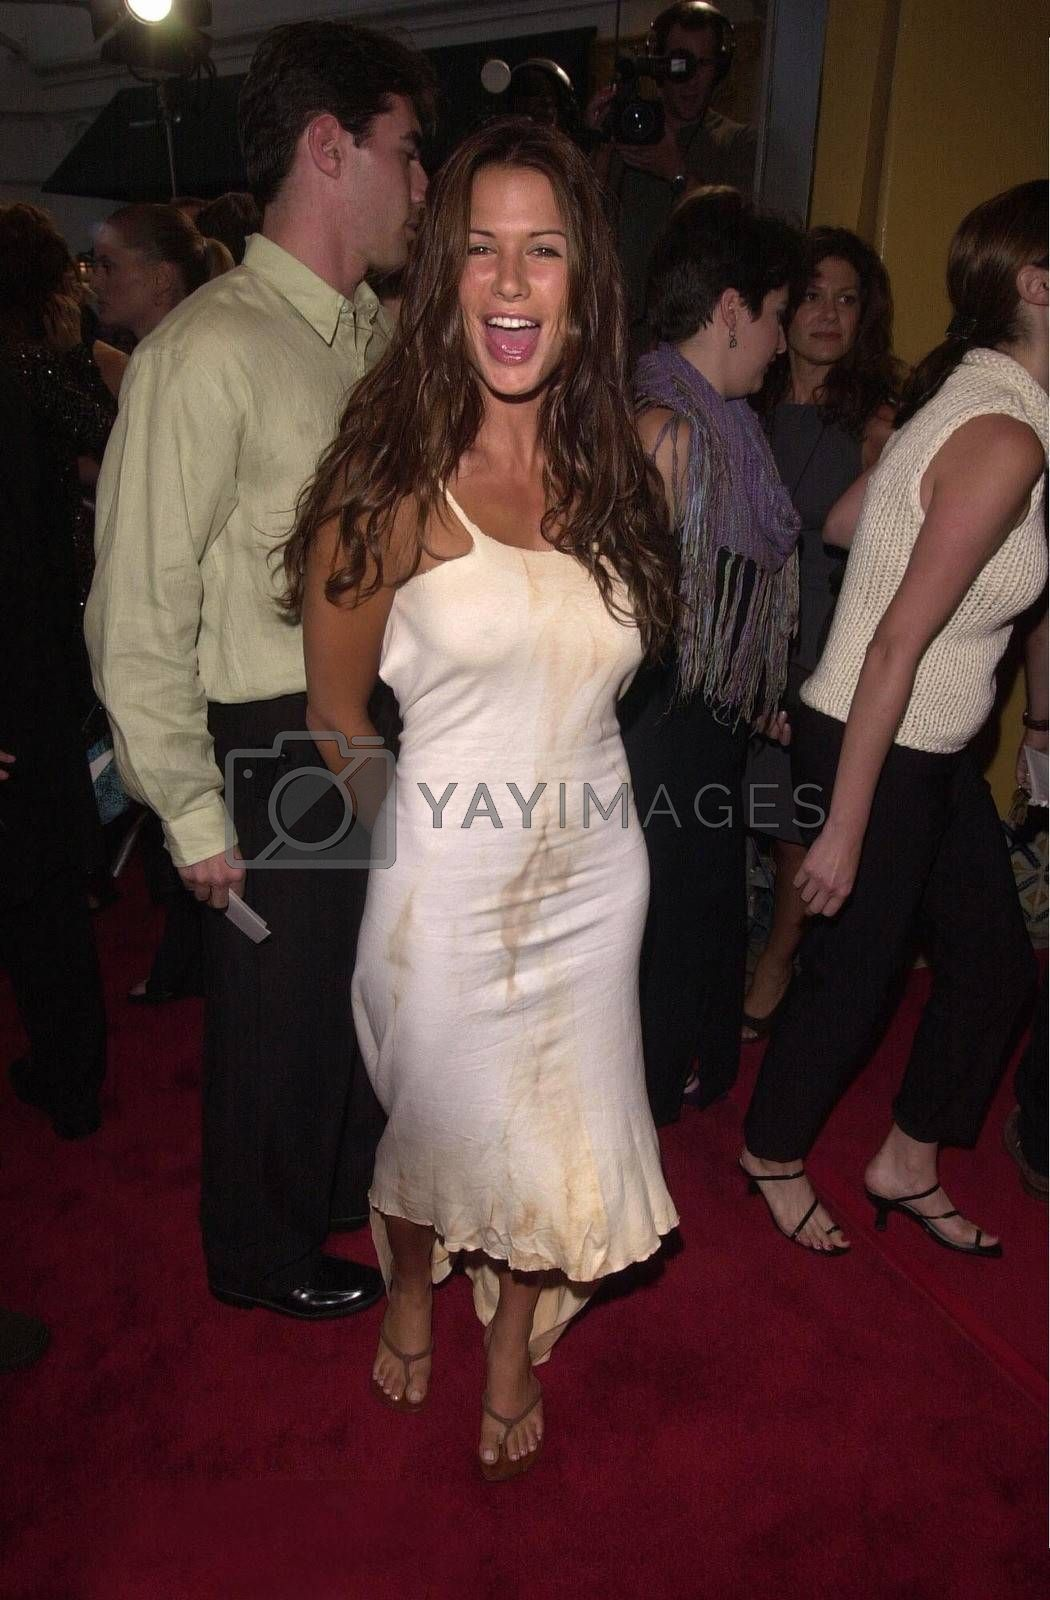 Rhona Mitra at the premiere of Hollow Man in Westwood. 08-02-00